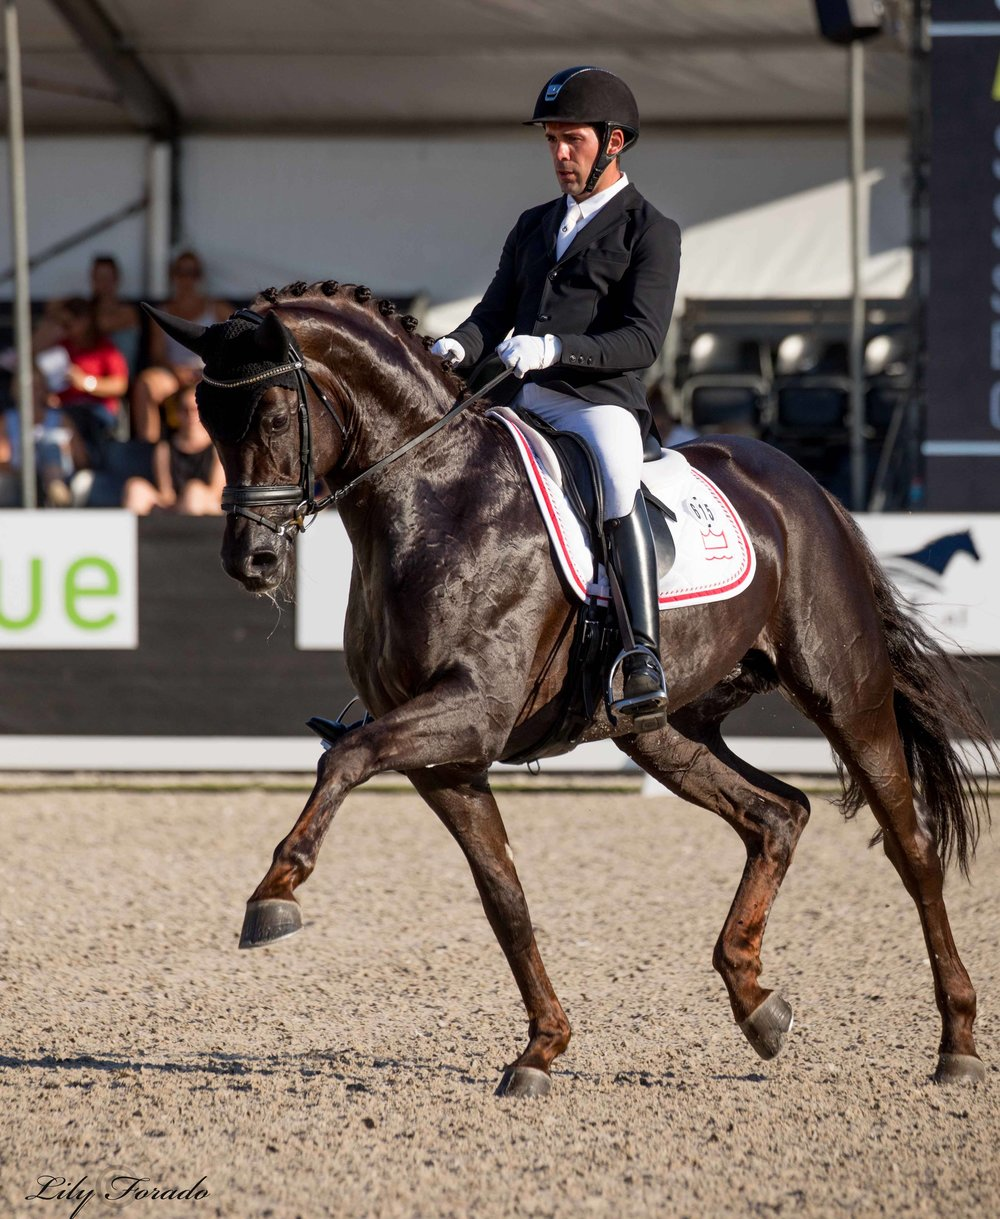 Danish Warmblood Atterupgaards Botticelli with Severo Jurado Lopes - photo credit: Lily Forado